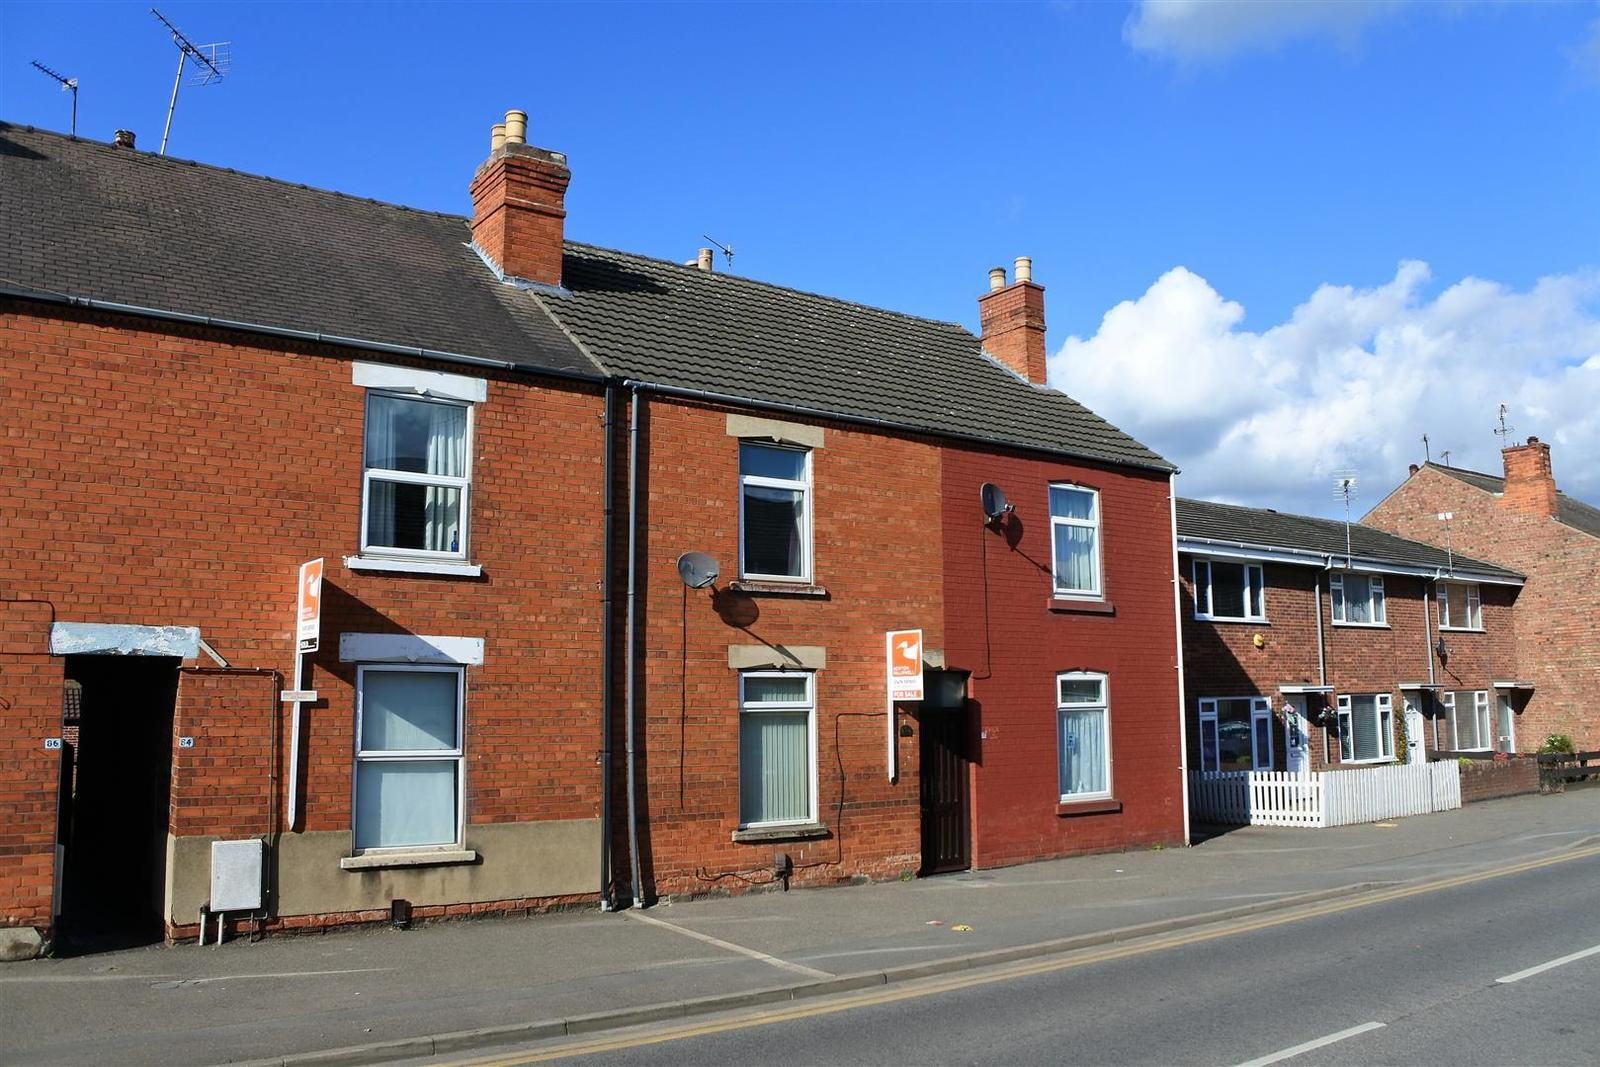 3 Bedrooms Terraced House for sale in Springfield Road, Grantham